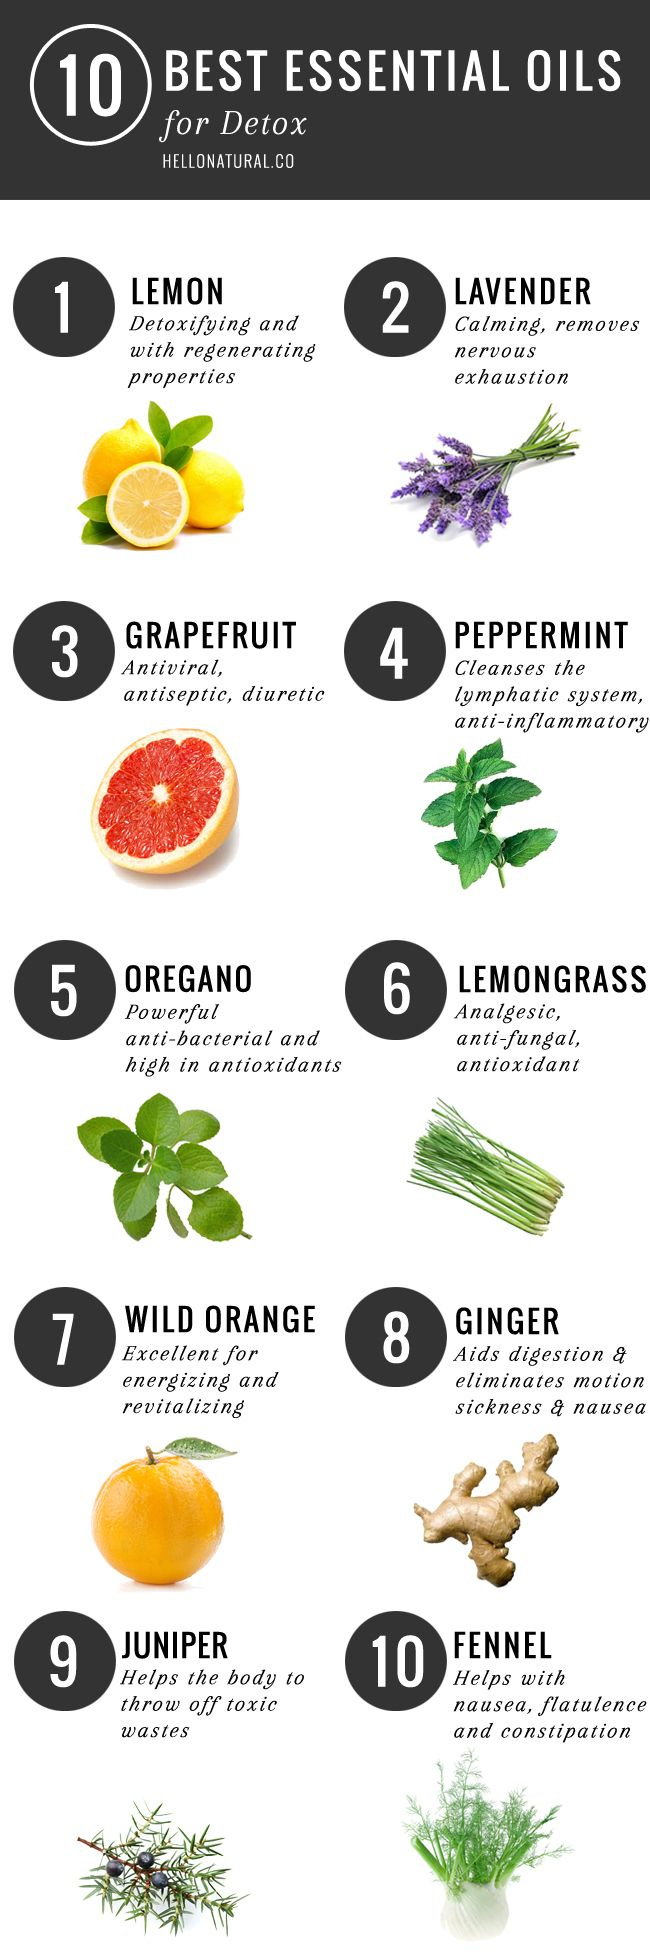 Top 10 #Essential #Oils for #Detox